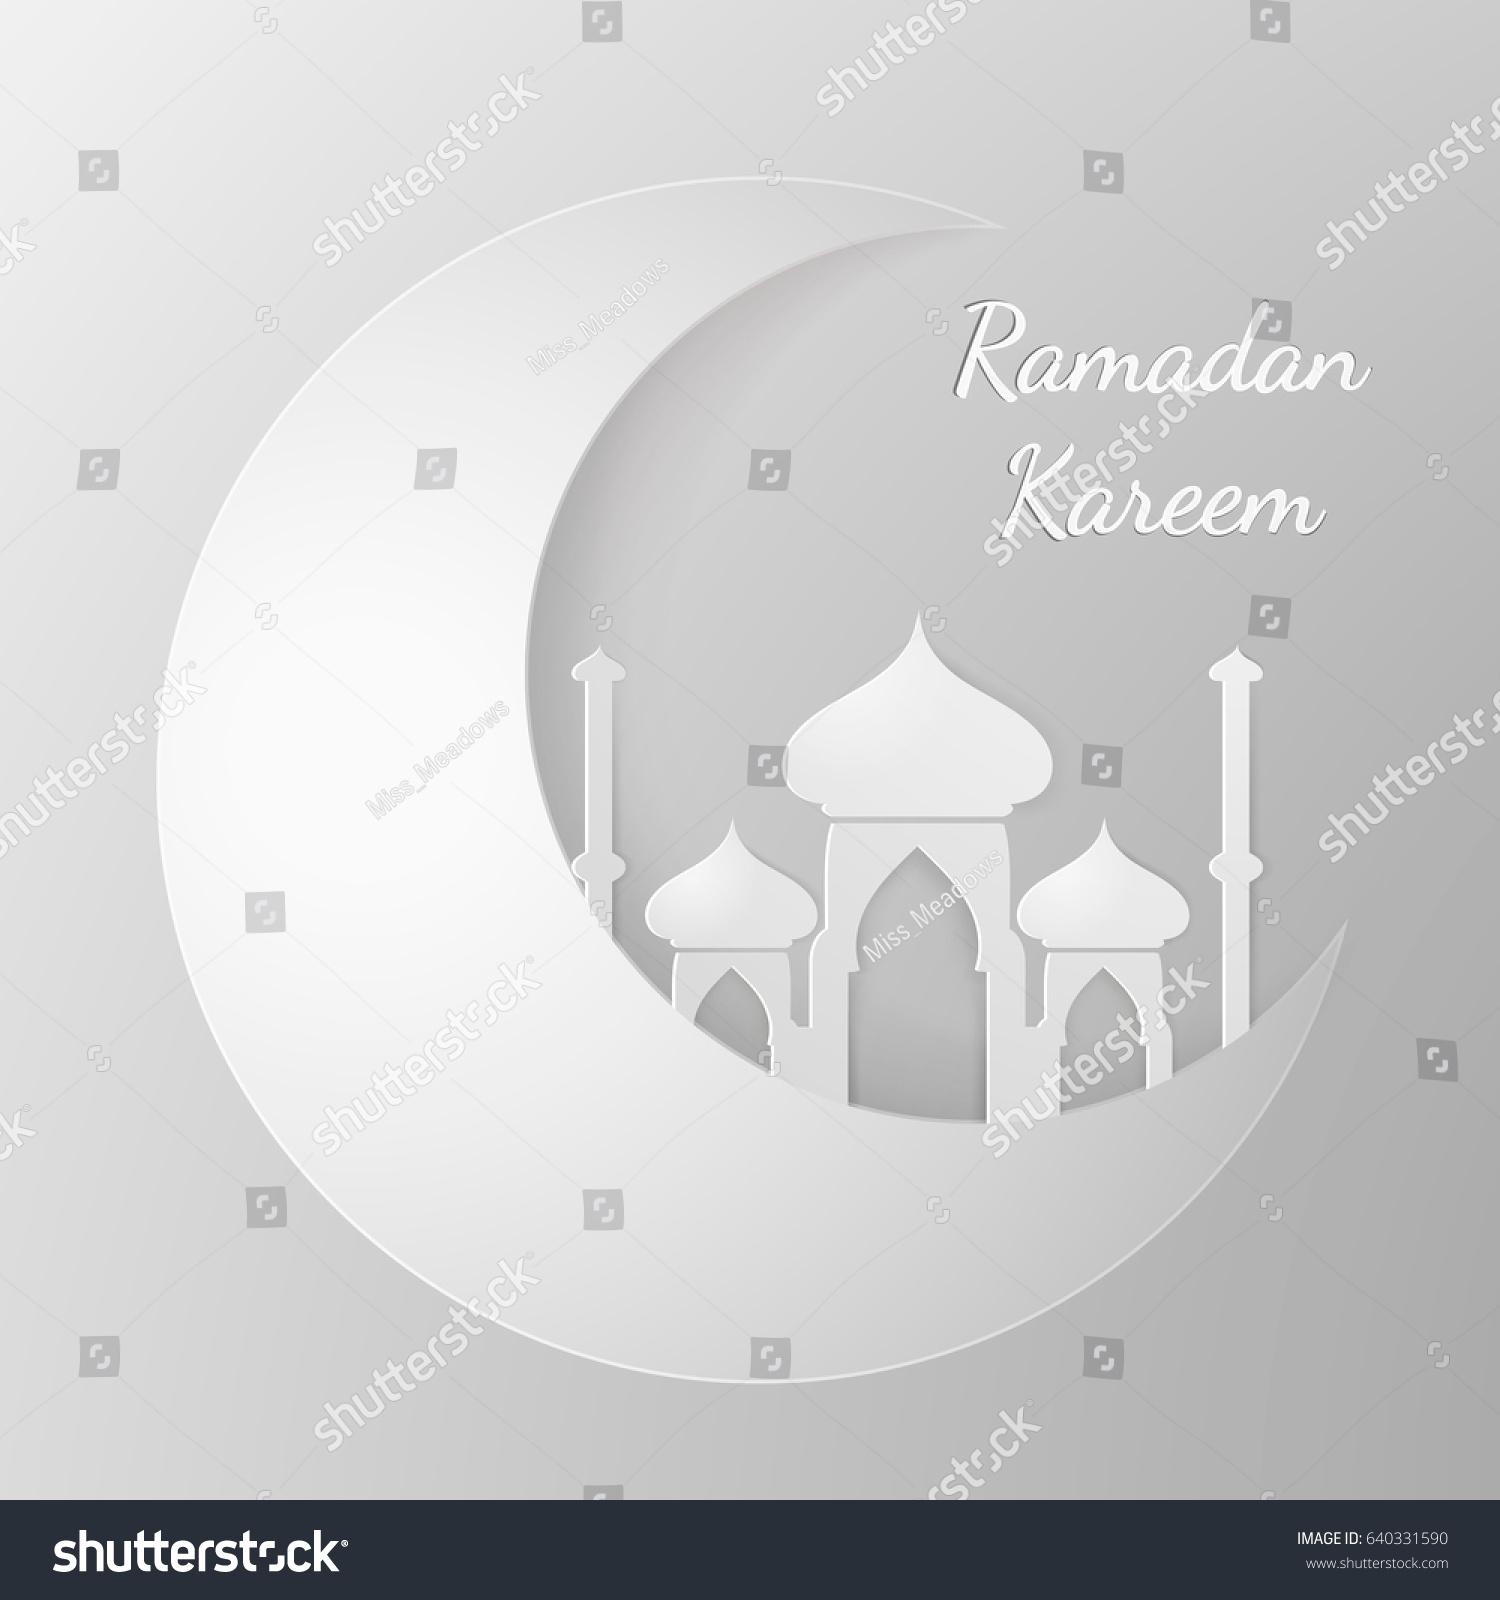 Vector ramadan template design greeting card stock vector 640331590 vector ramadan template design greeting card in 3d style cutting paper moon and mosque kristyandbryce Image collections